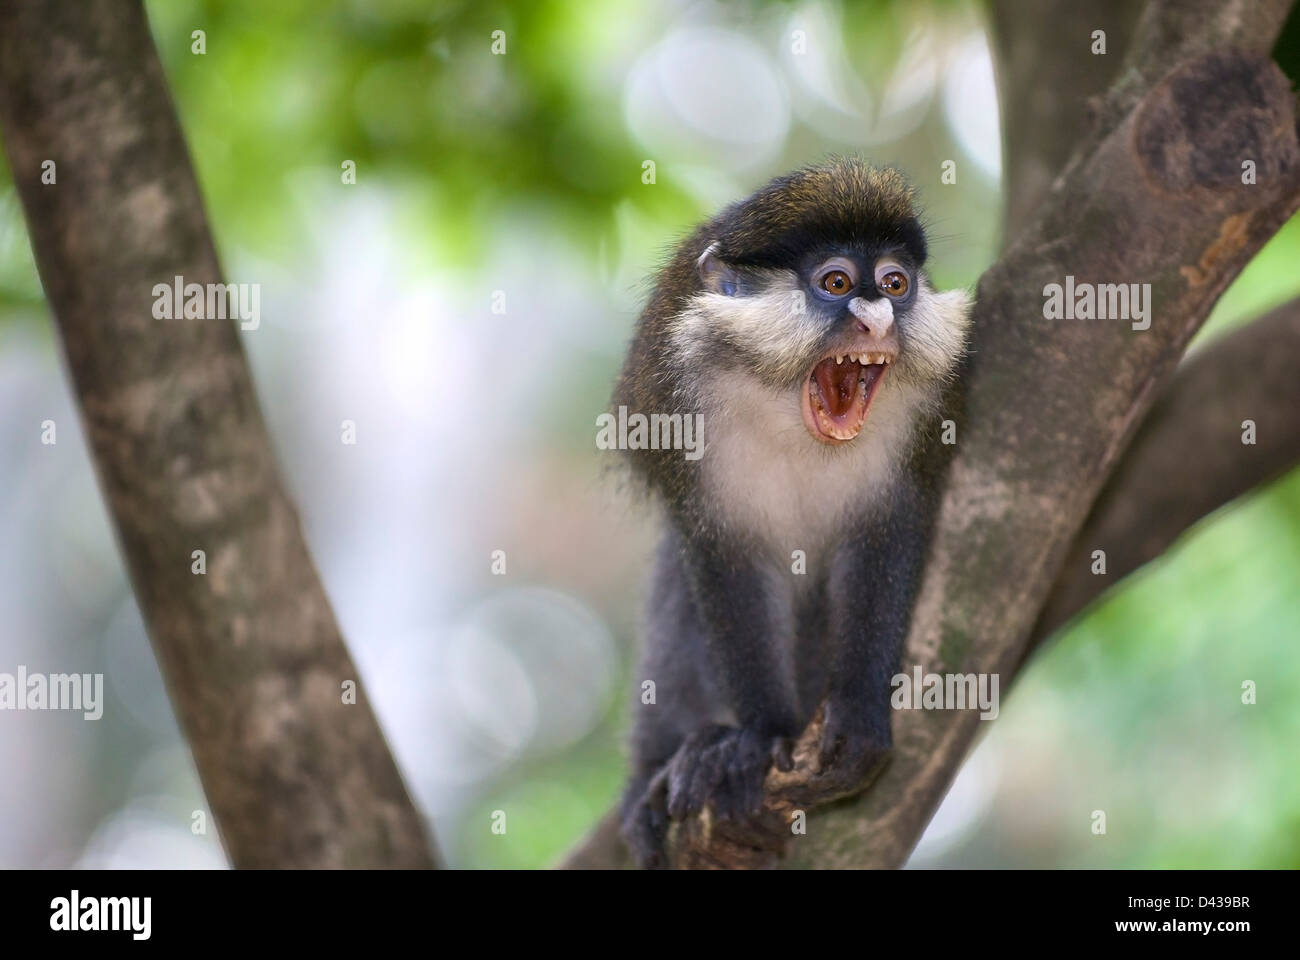 A Red-Tailed Monkey, Cercopithecus ascanius, vocalizing aggressively at other members of the troupe. Stock Photo